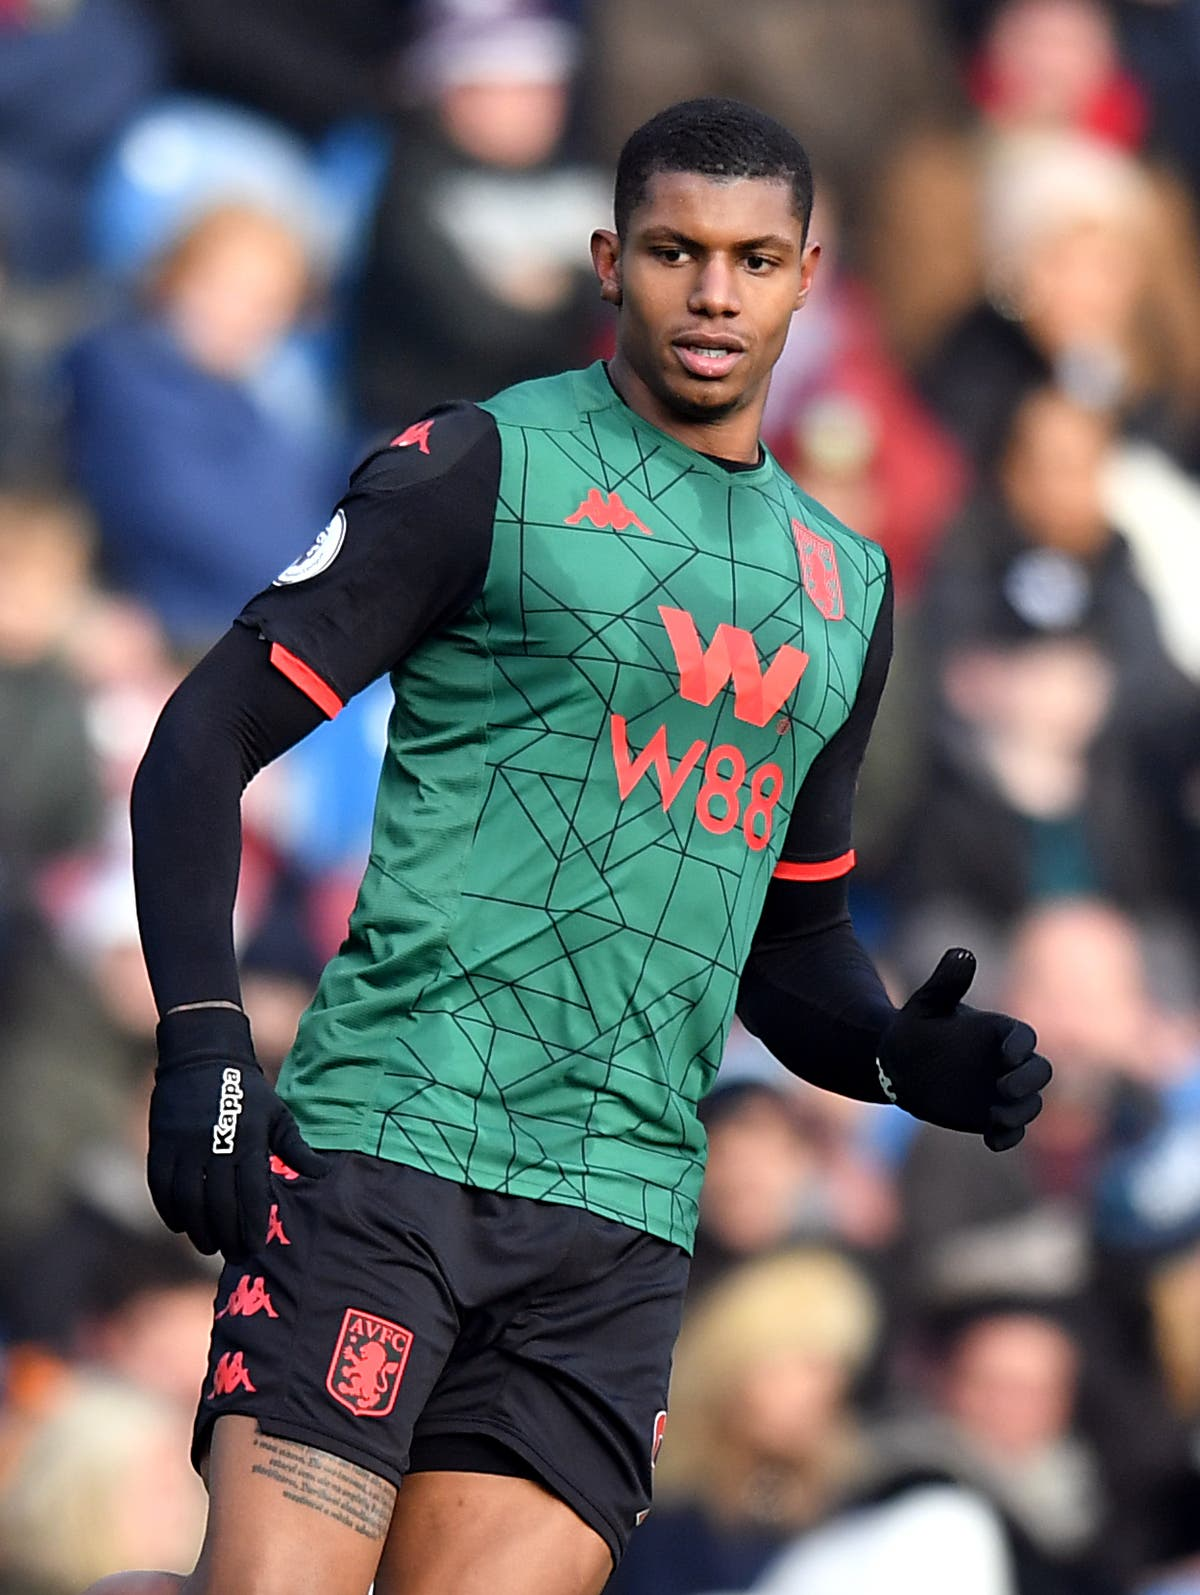 Wesley leaves Aston Villa for loan spell at Club Brugge